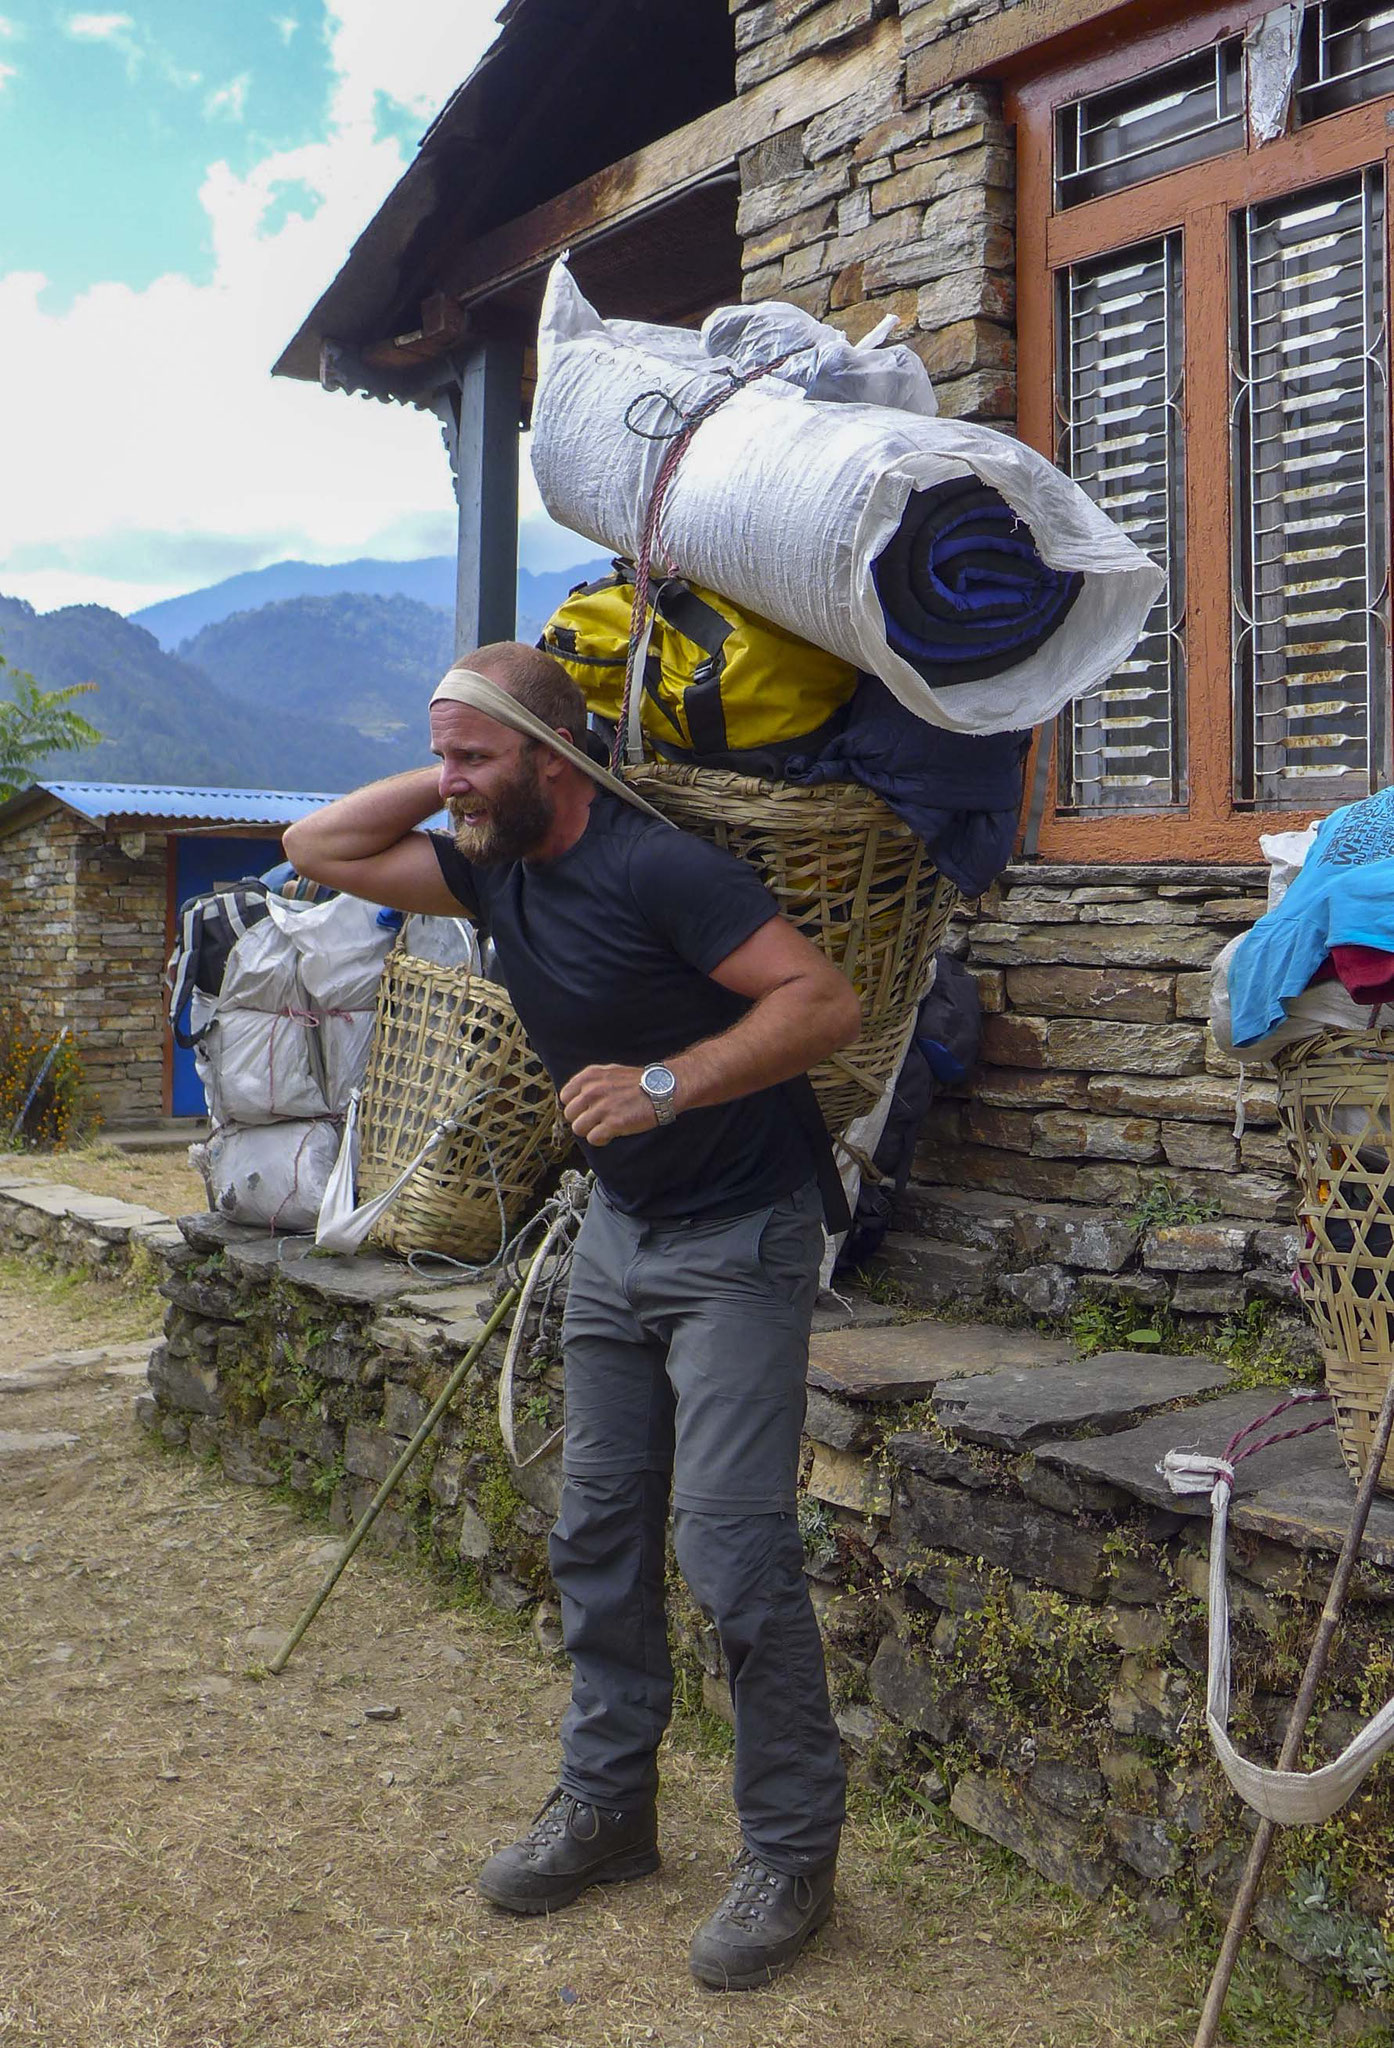 The luggage of the porters